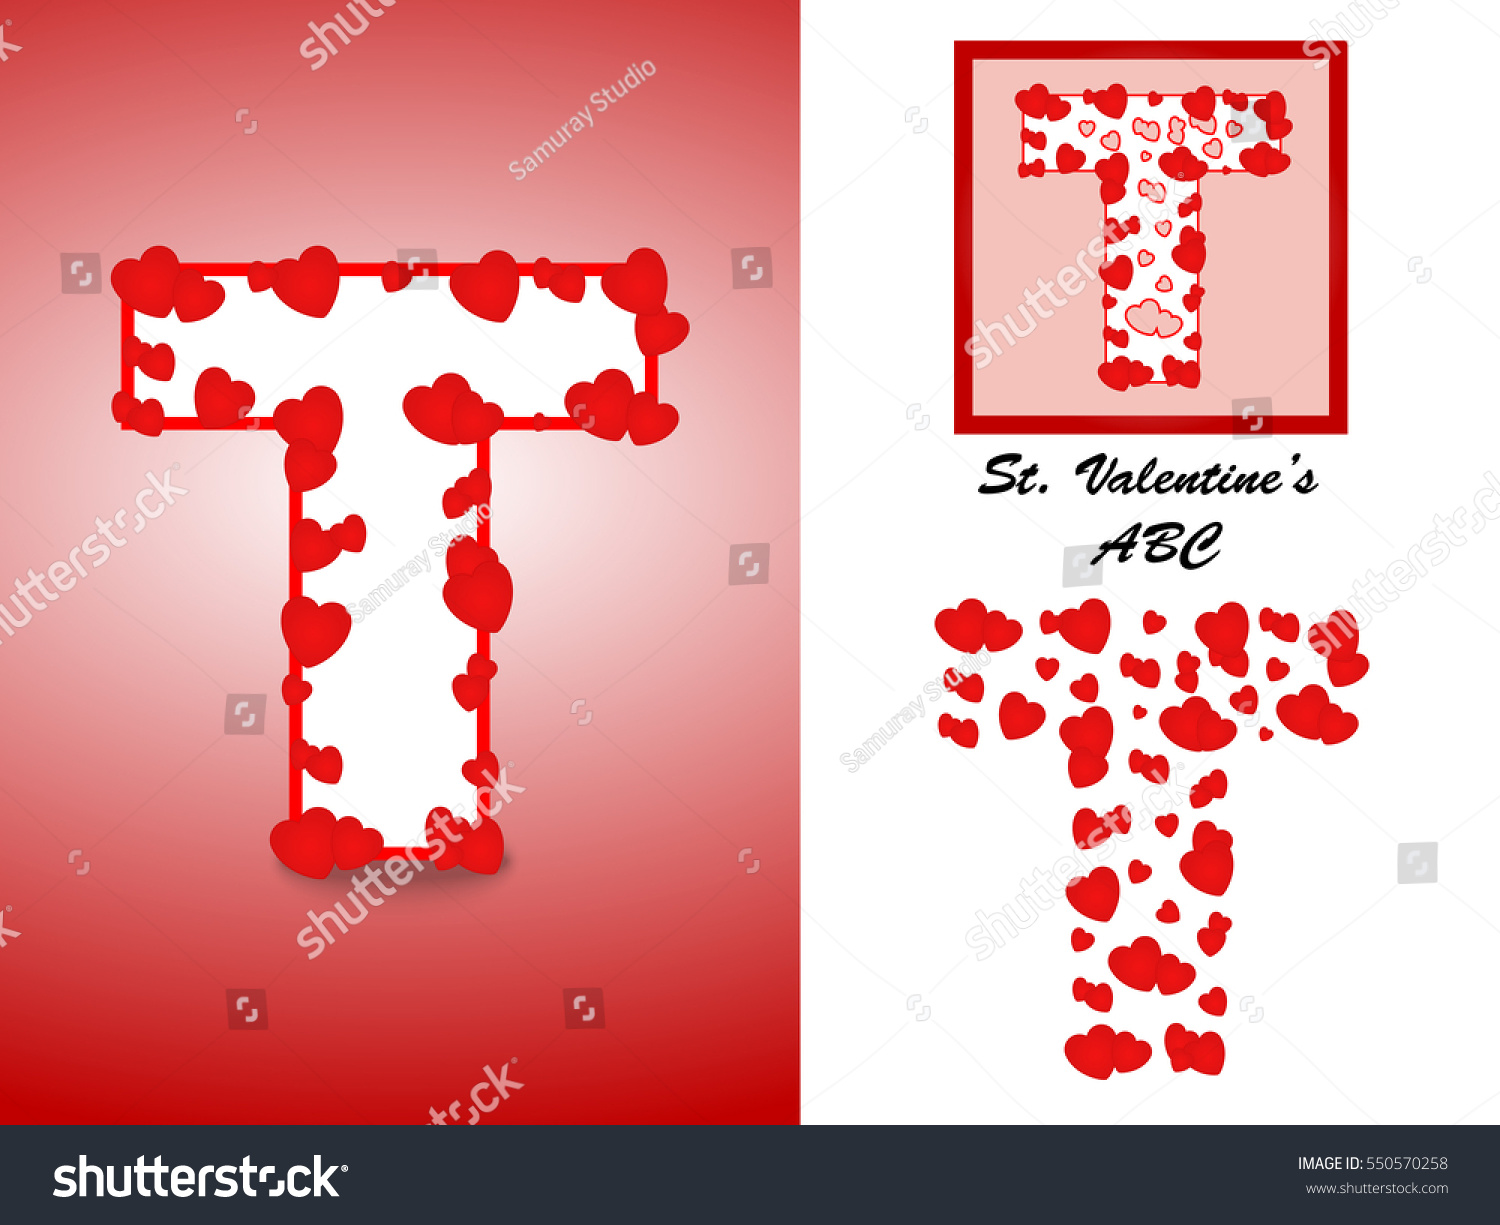 Alphabet Letter T Red Heart Valentine Stock Vector (Royalty Free ...